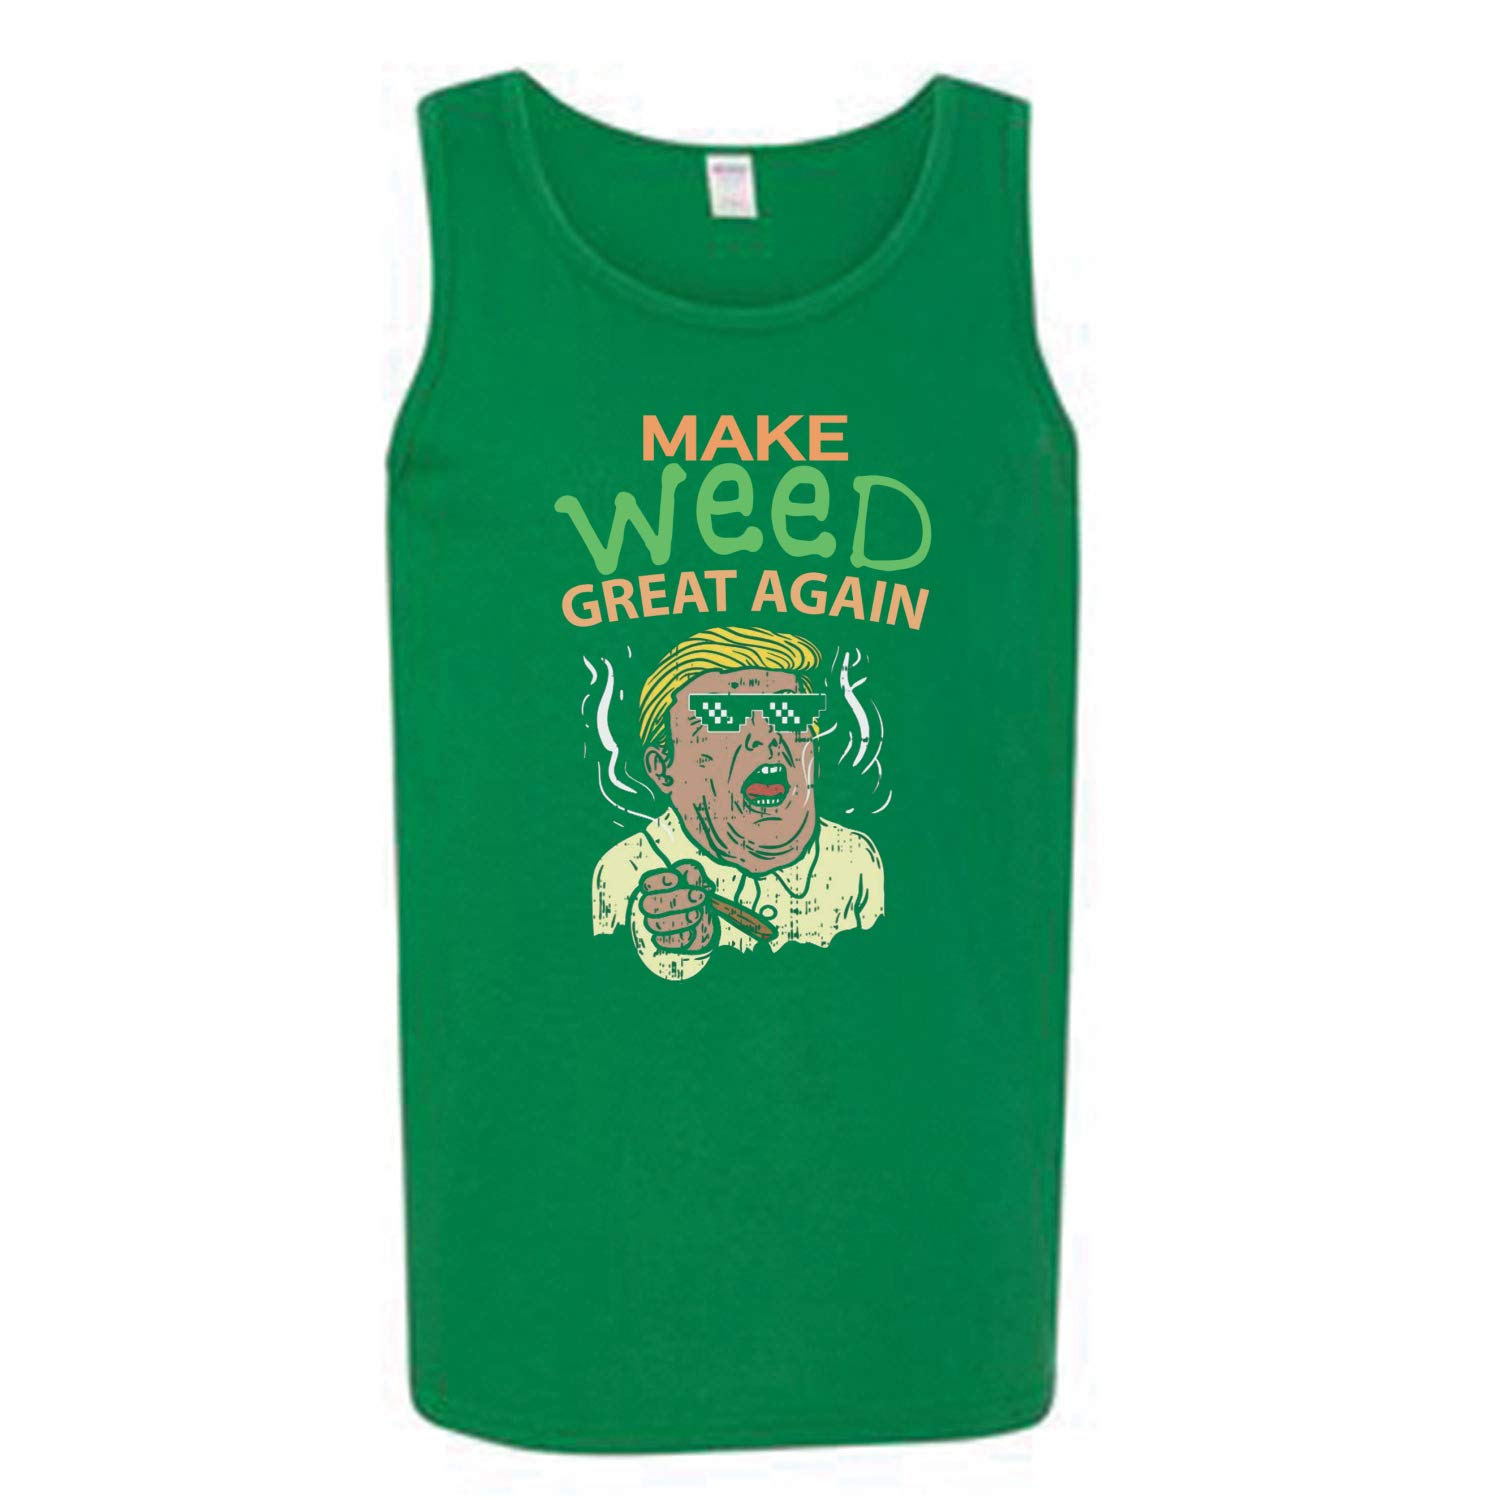 Donkey Threads Make Weed Great Again Weed 4//20 Mens Graphic Tank Top